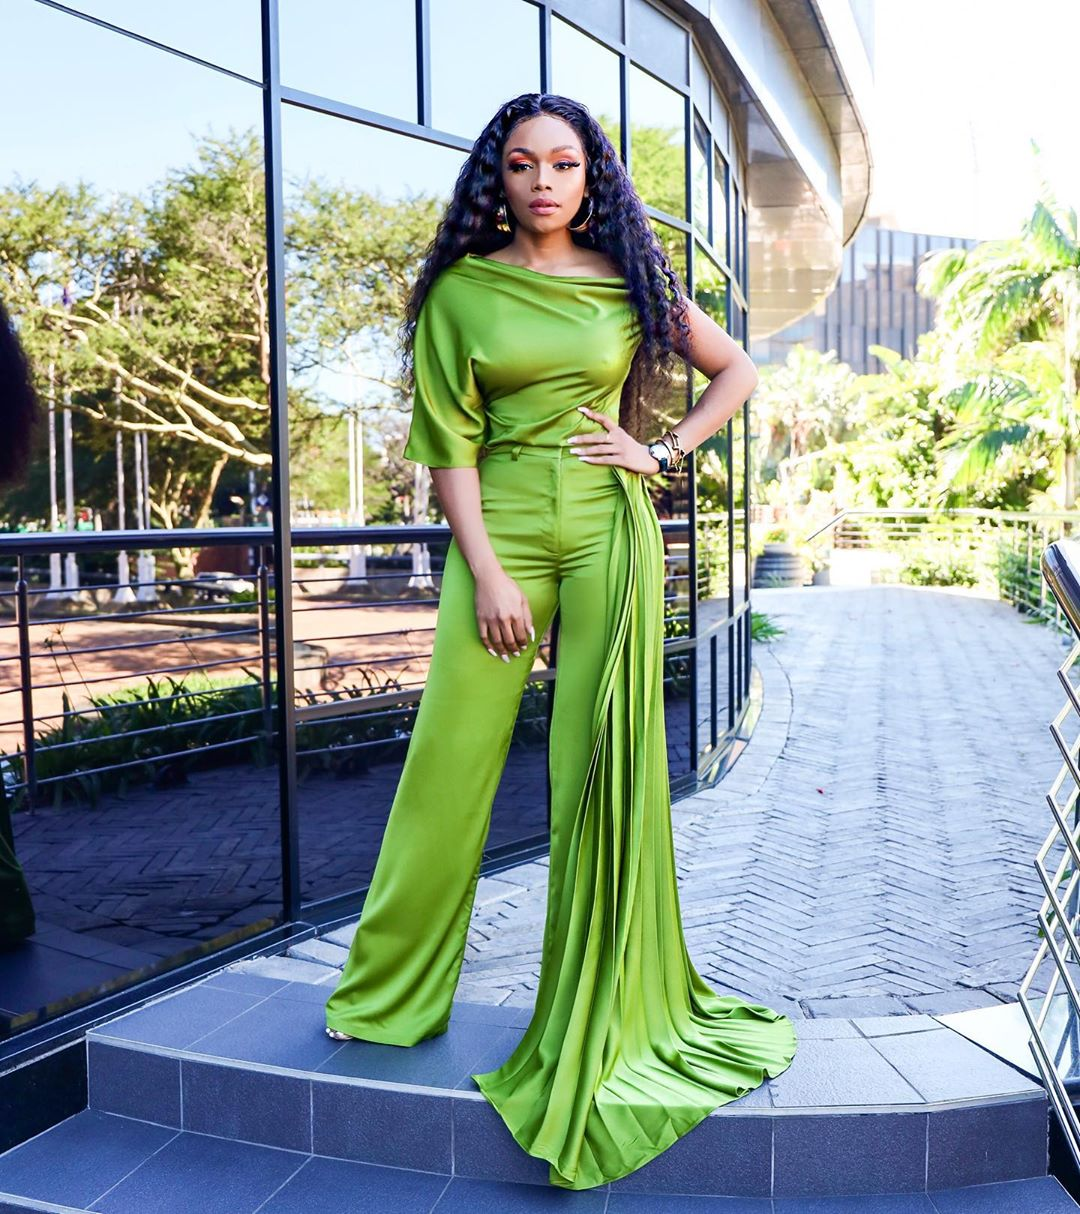 Bonanag Matheba Looks Dashing And Less Dramatic